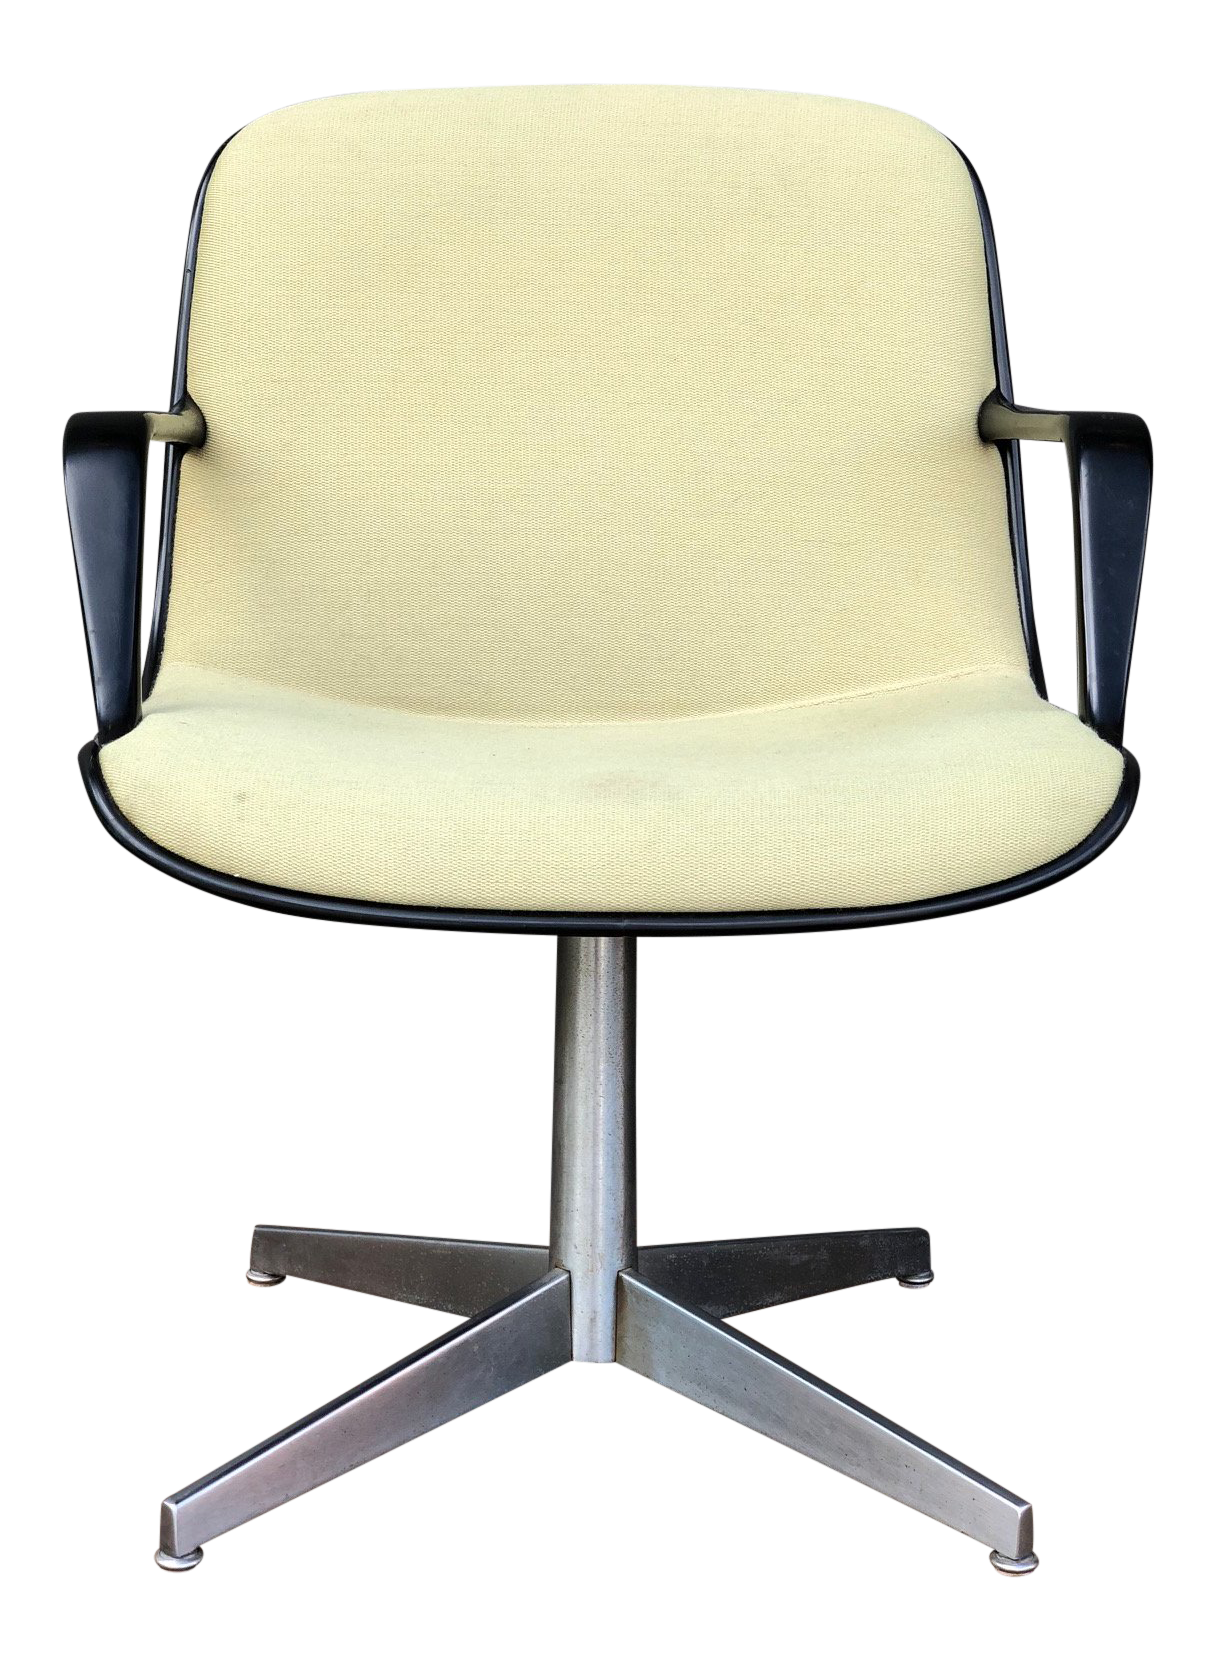 1970s Vintage Steelcase Side/Office Chair